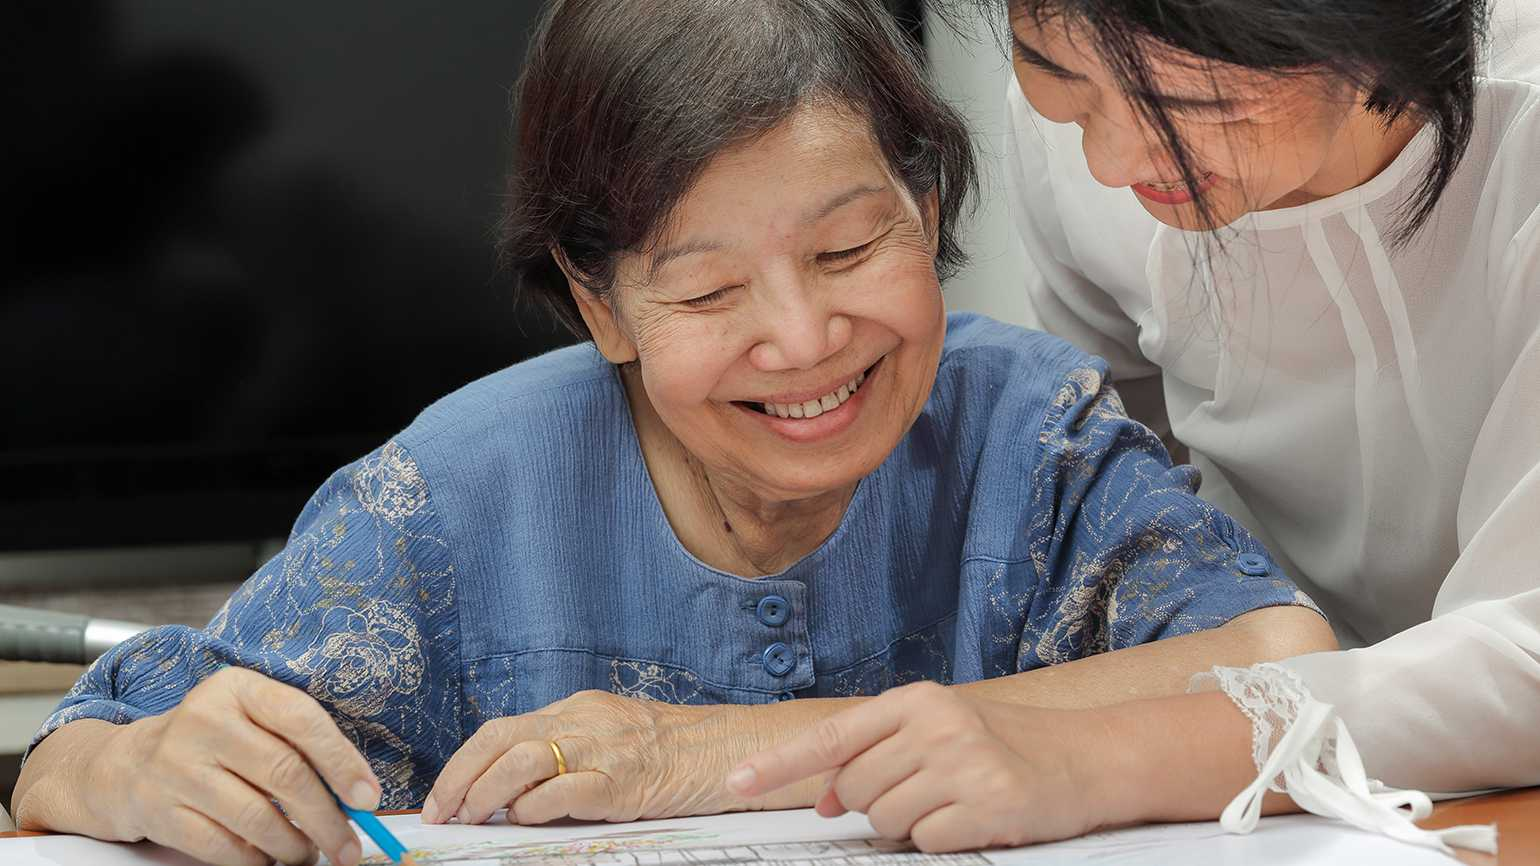 3 Ways to Plan for a Loved One's Care in the Event of Disaster